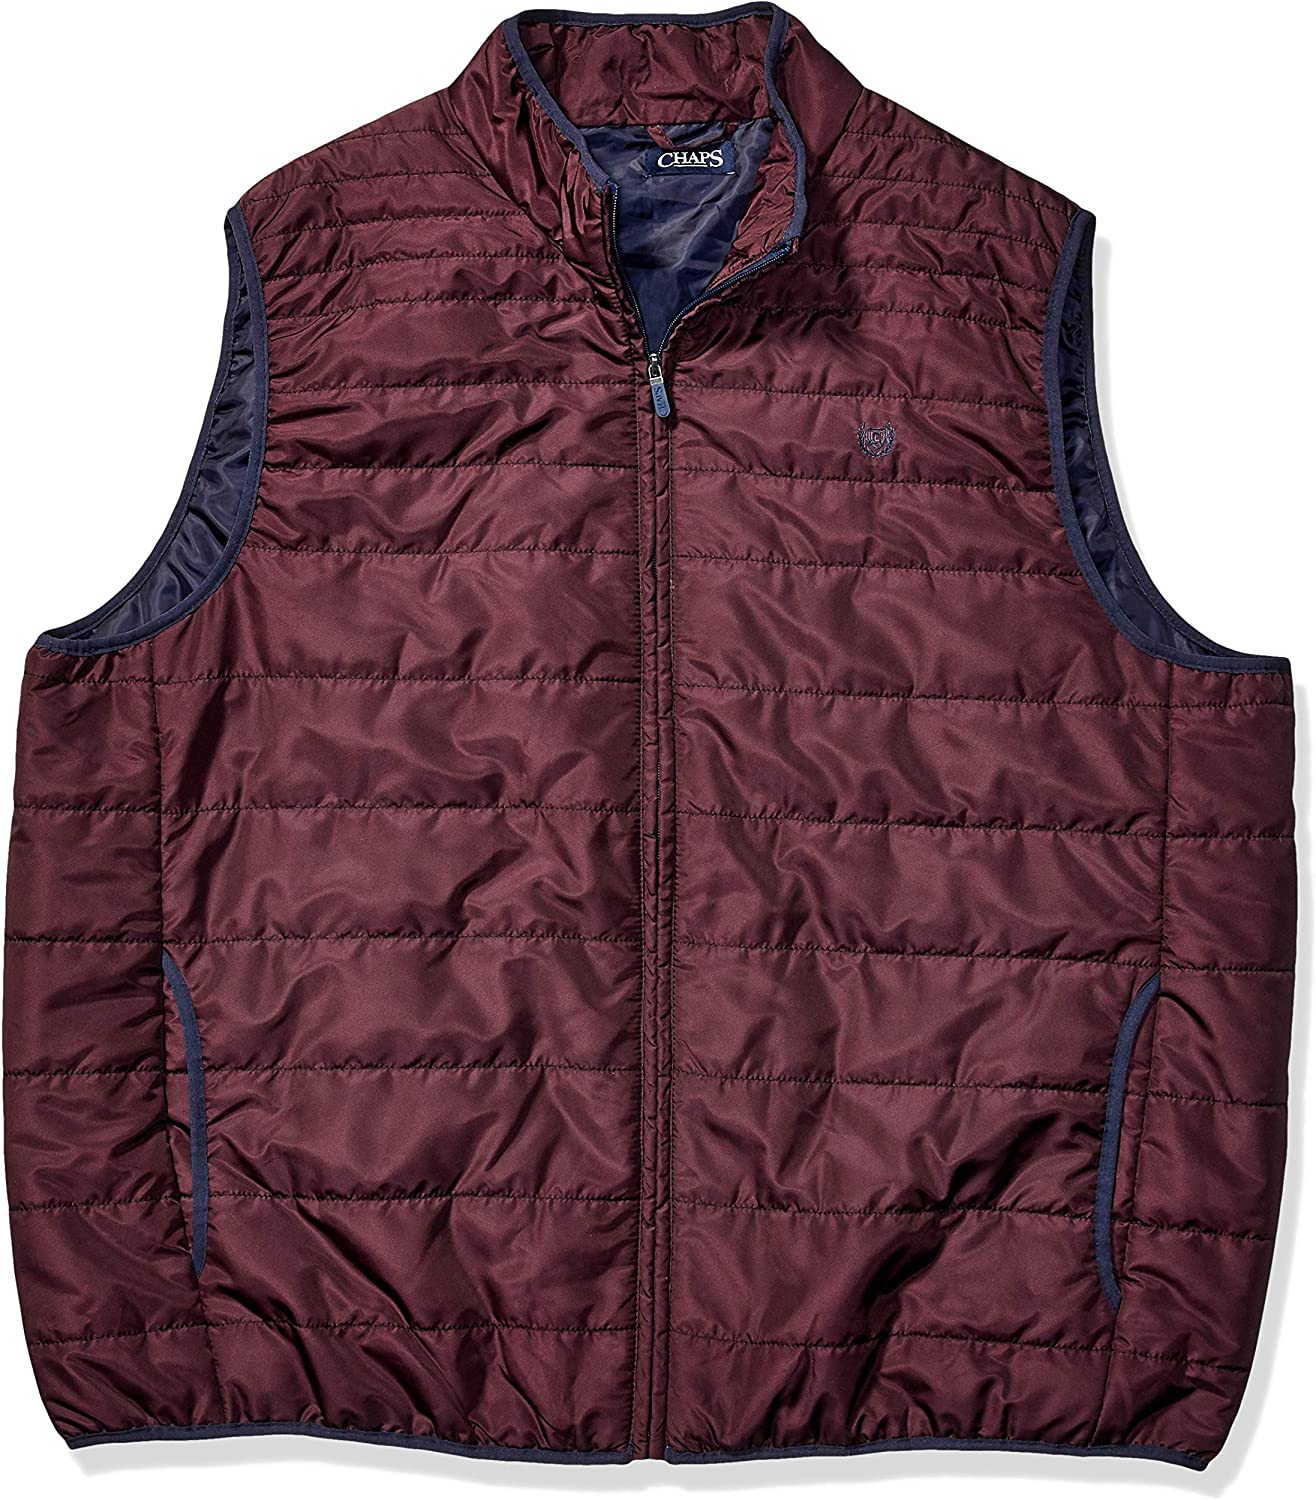 Chaps mens Big and Tall Packable Quilted Vest